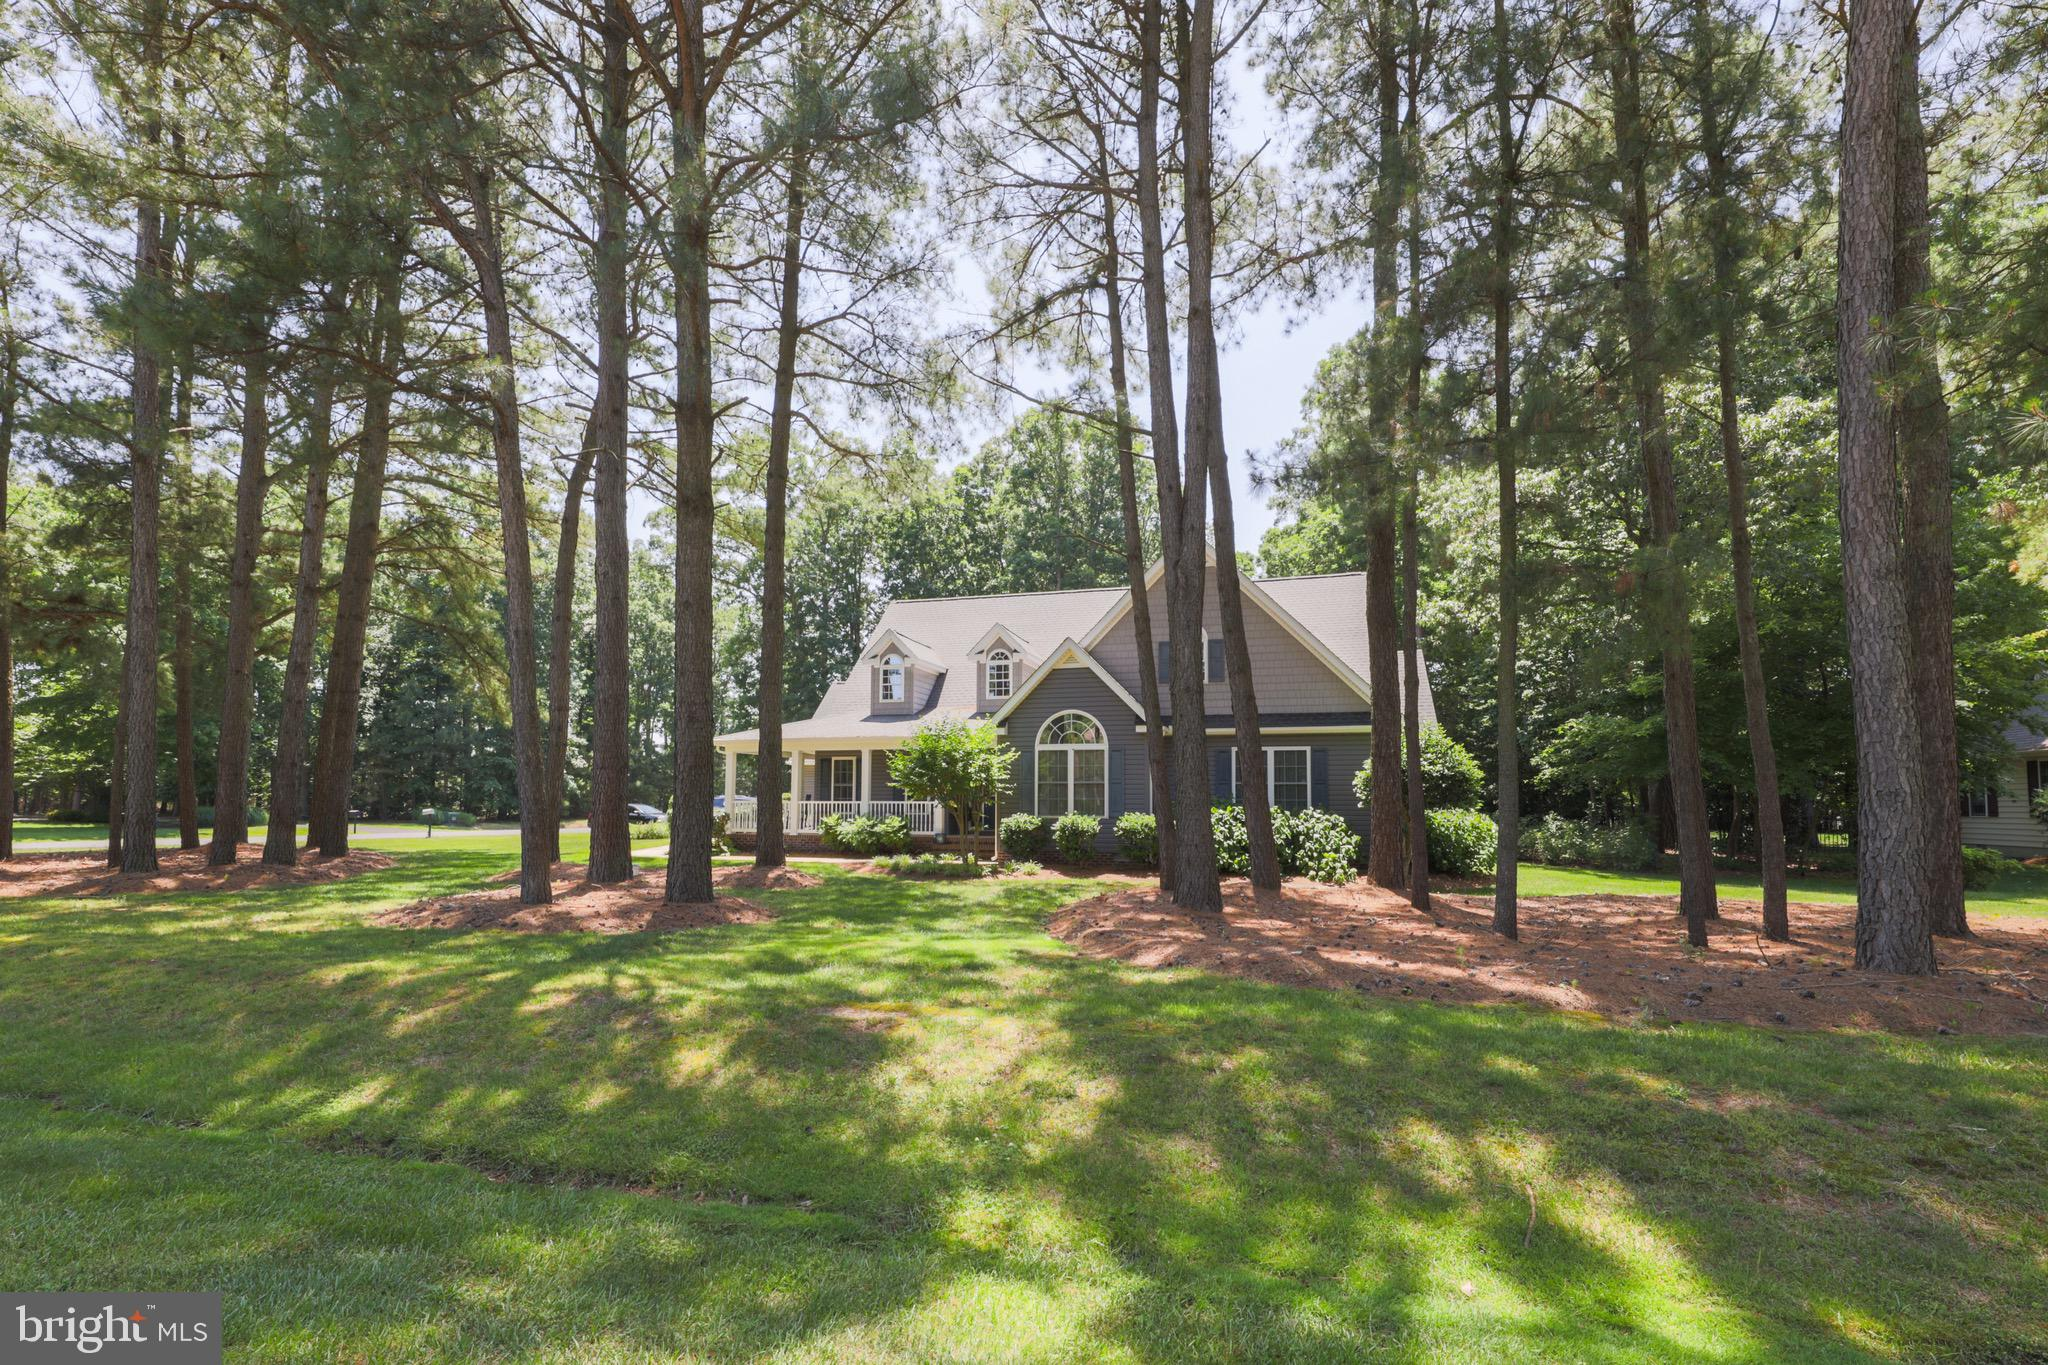 Magnificent home in Milton! This corner lot contemporary 2-story home touts skylights, bay windows, vaulted ceilings, and spectacular open concept floor plan. Striking pigeon gray siding accented with ocean blue shutters 3 BRs/2½ bath over 2,500 sq. ft. home is tucked in community of Red Fox Run, nestled between Rt. 1/Rt. 113. Breathtaking landscaping is statement making! Shrubs and hedges edge brick trimmed wrap-around sprawling covered front porch that looks to mature tree-dotted front lawn. Driveway leads to side-entry, 2-car garage, preserving front-faced home's curb appeal! Step into foyer with soaring ceilings and light-infused space beyond, and clear views through home to back wall. Golden, polished wide-planked hardwood floors are throughout most of main level, while circular layout connects main rooms, offering easy-flow floor plan. Foyer offers side wall, where sofa table/2 chairs fit nicely. 2 grand columns announce entrance into spacious, sun filled LR/FR and set elegant, upscale tone. Vibrantly colored couches, area rugs and pillows adorn huge space, made larger and lighter by vaulted ceiling, cherry ceiling fan and myriad of windows. Bump-out floor-to-ceiling wall is home to gas FP, 2 alcoves on either side of FP offer space for hutch/end tables and mix of windows/glass sliders span back wall. Open to LR/FR is gorgeous gourmet kitchen! Hardwood floors are replaced with beautiful ceramic tile, yet light wood is echoed in maple cabinets. Room above cabinets offer snippets of trailing vines and greenery, brilliantly colored bottles and vases and remembered mementos! Granite countertops are paired with SS appliances. Angled 2-tiered breakfast bar with stools cleverly has dual sink below that looks out to adjoining LR/FR, keeping cook engaged with ongoing conversation. 2-tiered countertop is repeated on opposite side with defined desk area, perfect for catching up on mail and messages. Adjacent to main kitchen is delightful morning room enveloped in 2 walls